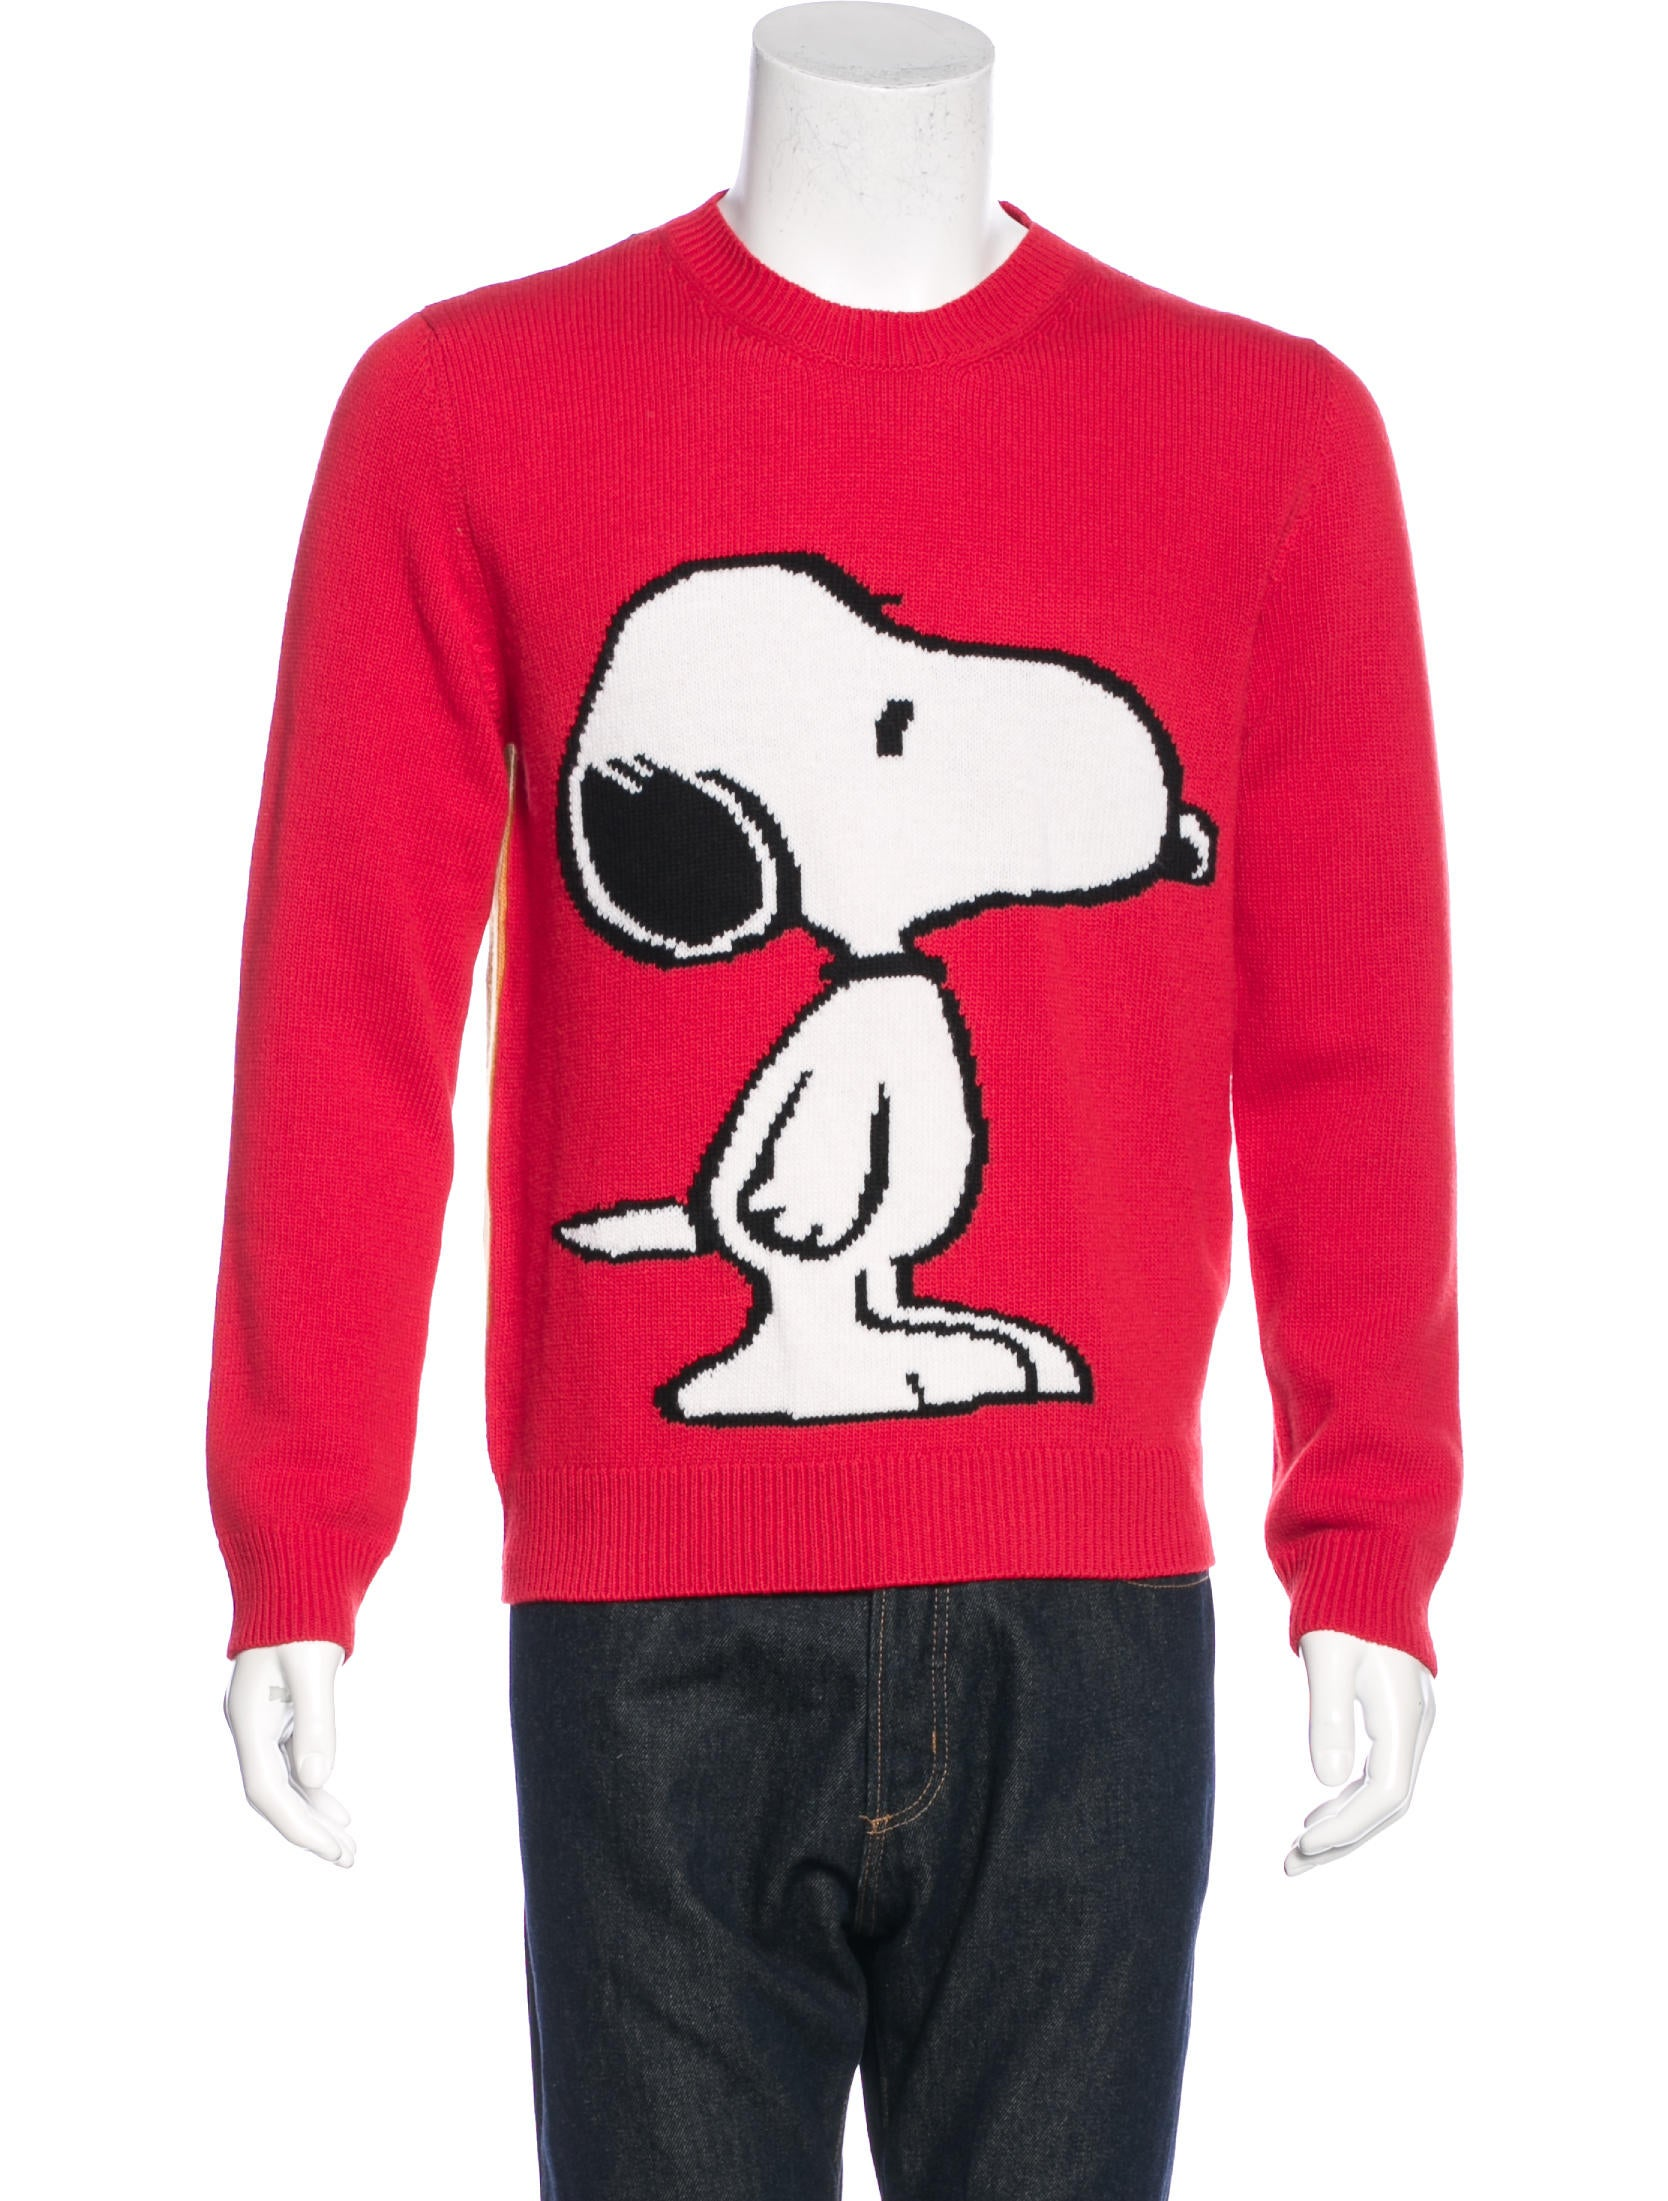 bb8090a2259 Gucci 2016 Wool Snoopy Sweater w  Tags - Clothing - GUC136398